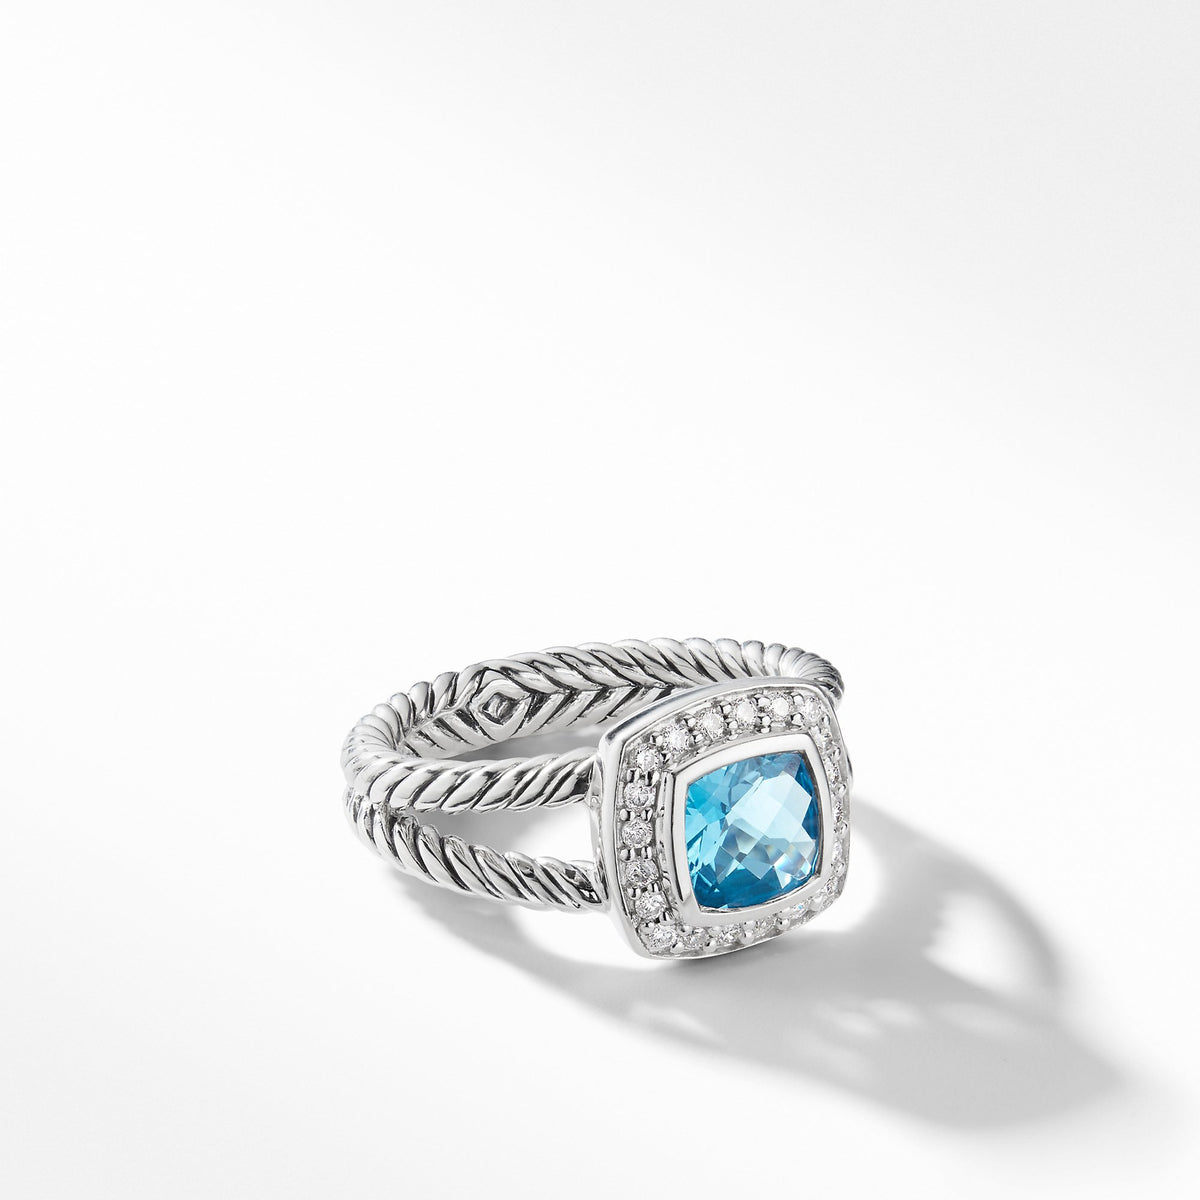 Petite Albion Ring with Blue Topaz and Diamonds